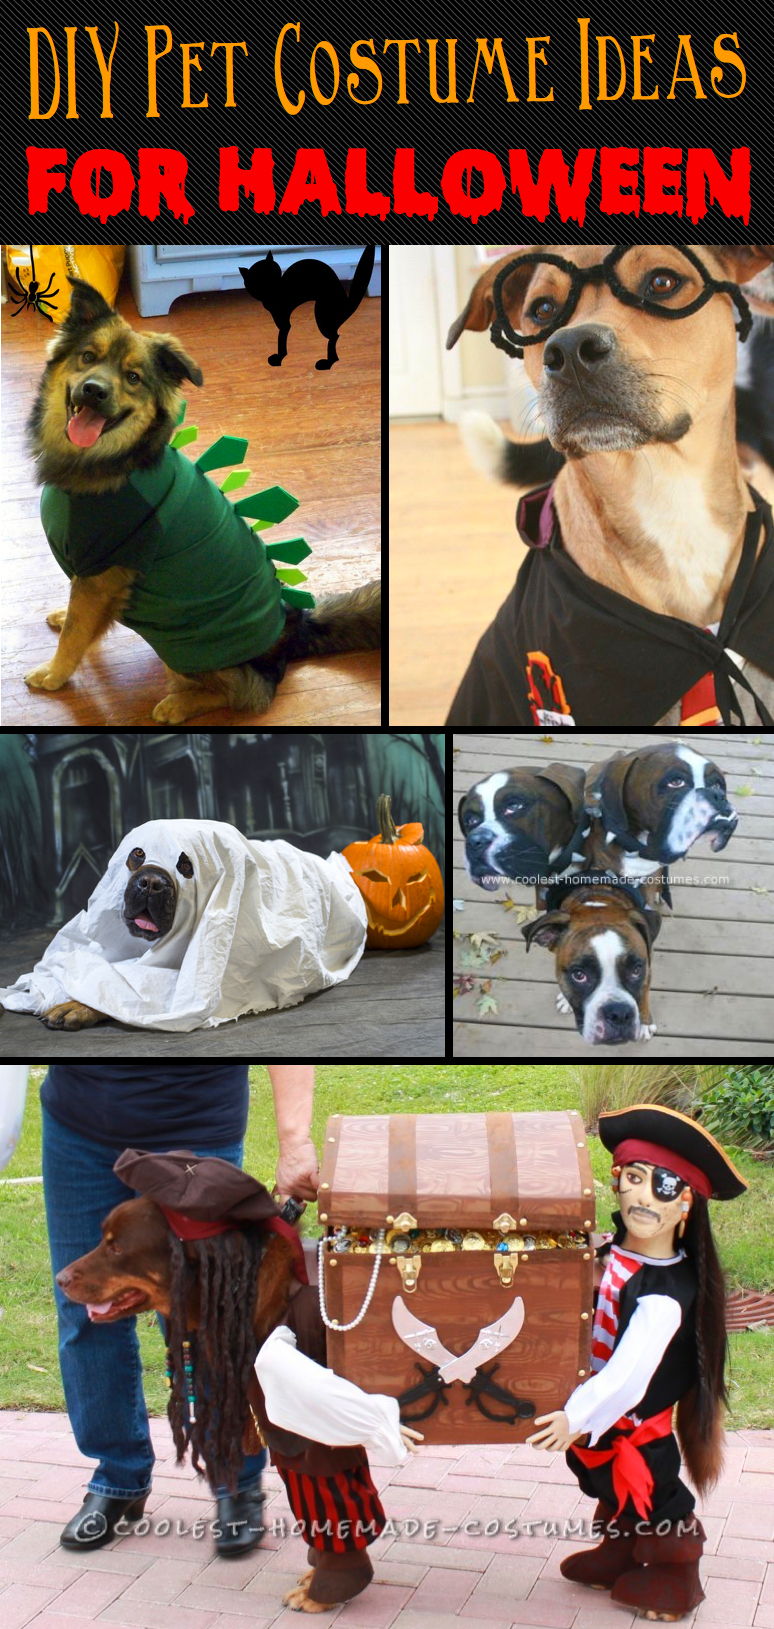 20 adorable diy pet costume ideas for halloween 2017 20 incredibly adorable yet simple diy pet costume ideas for halloween solutioingenieria Image collections